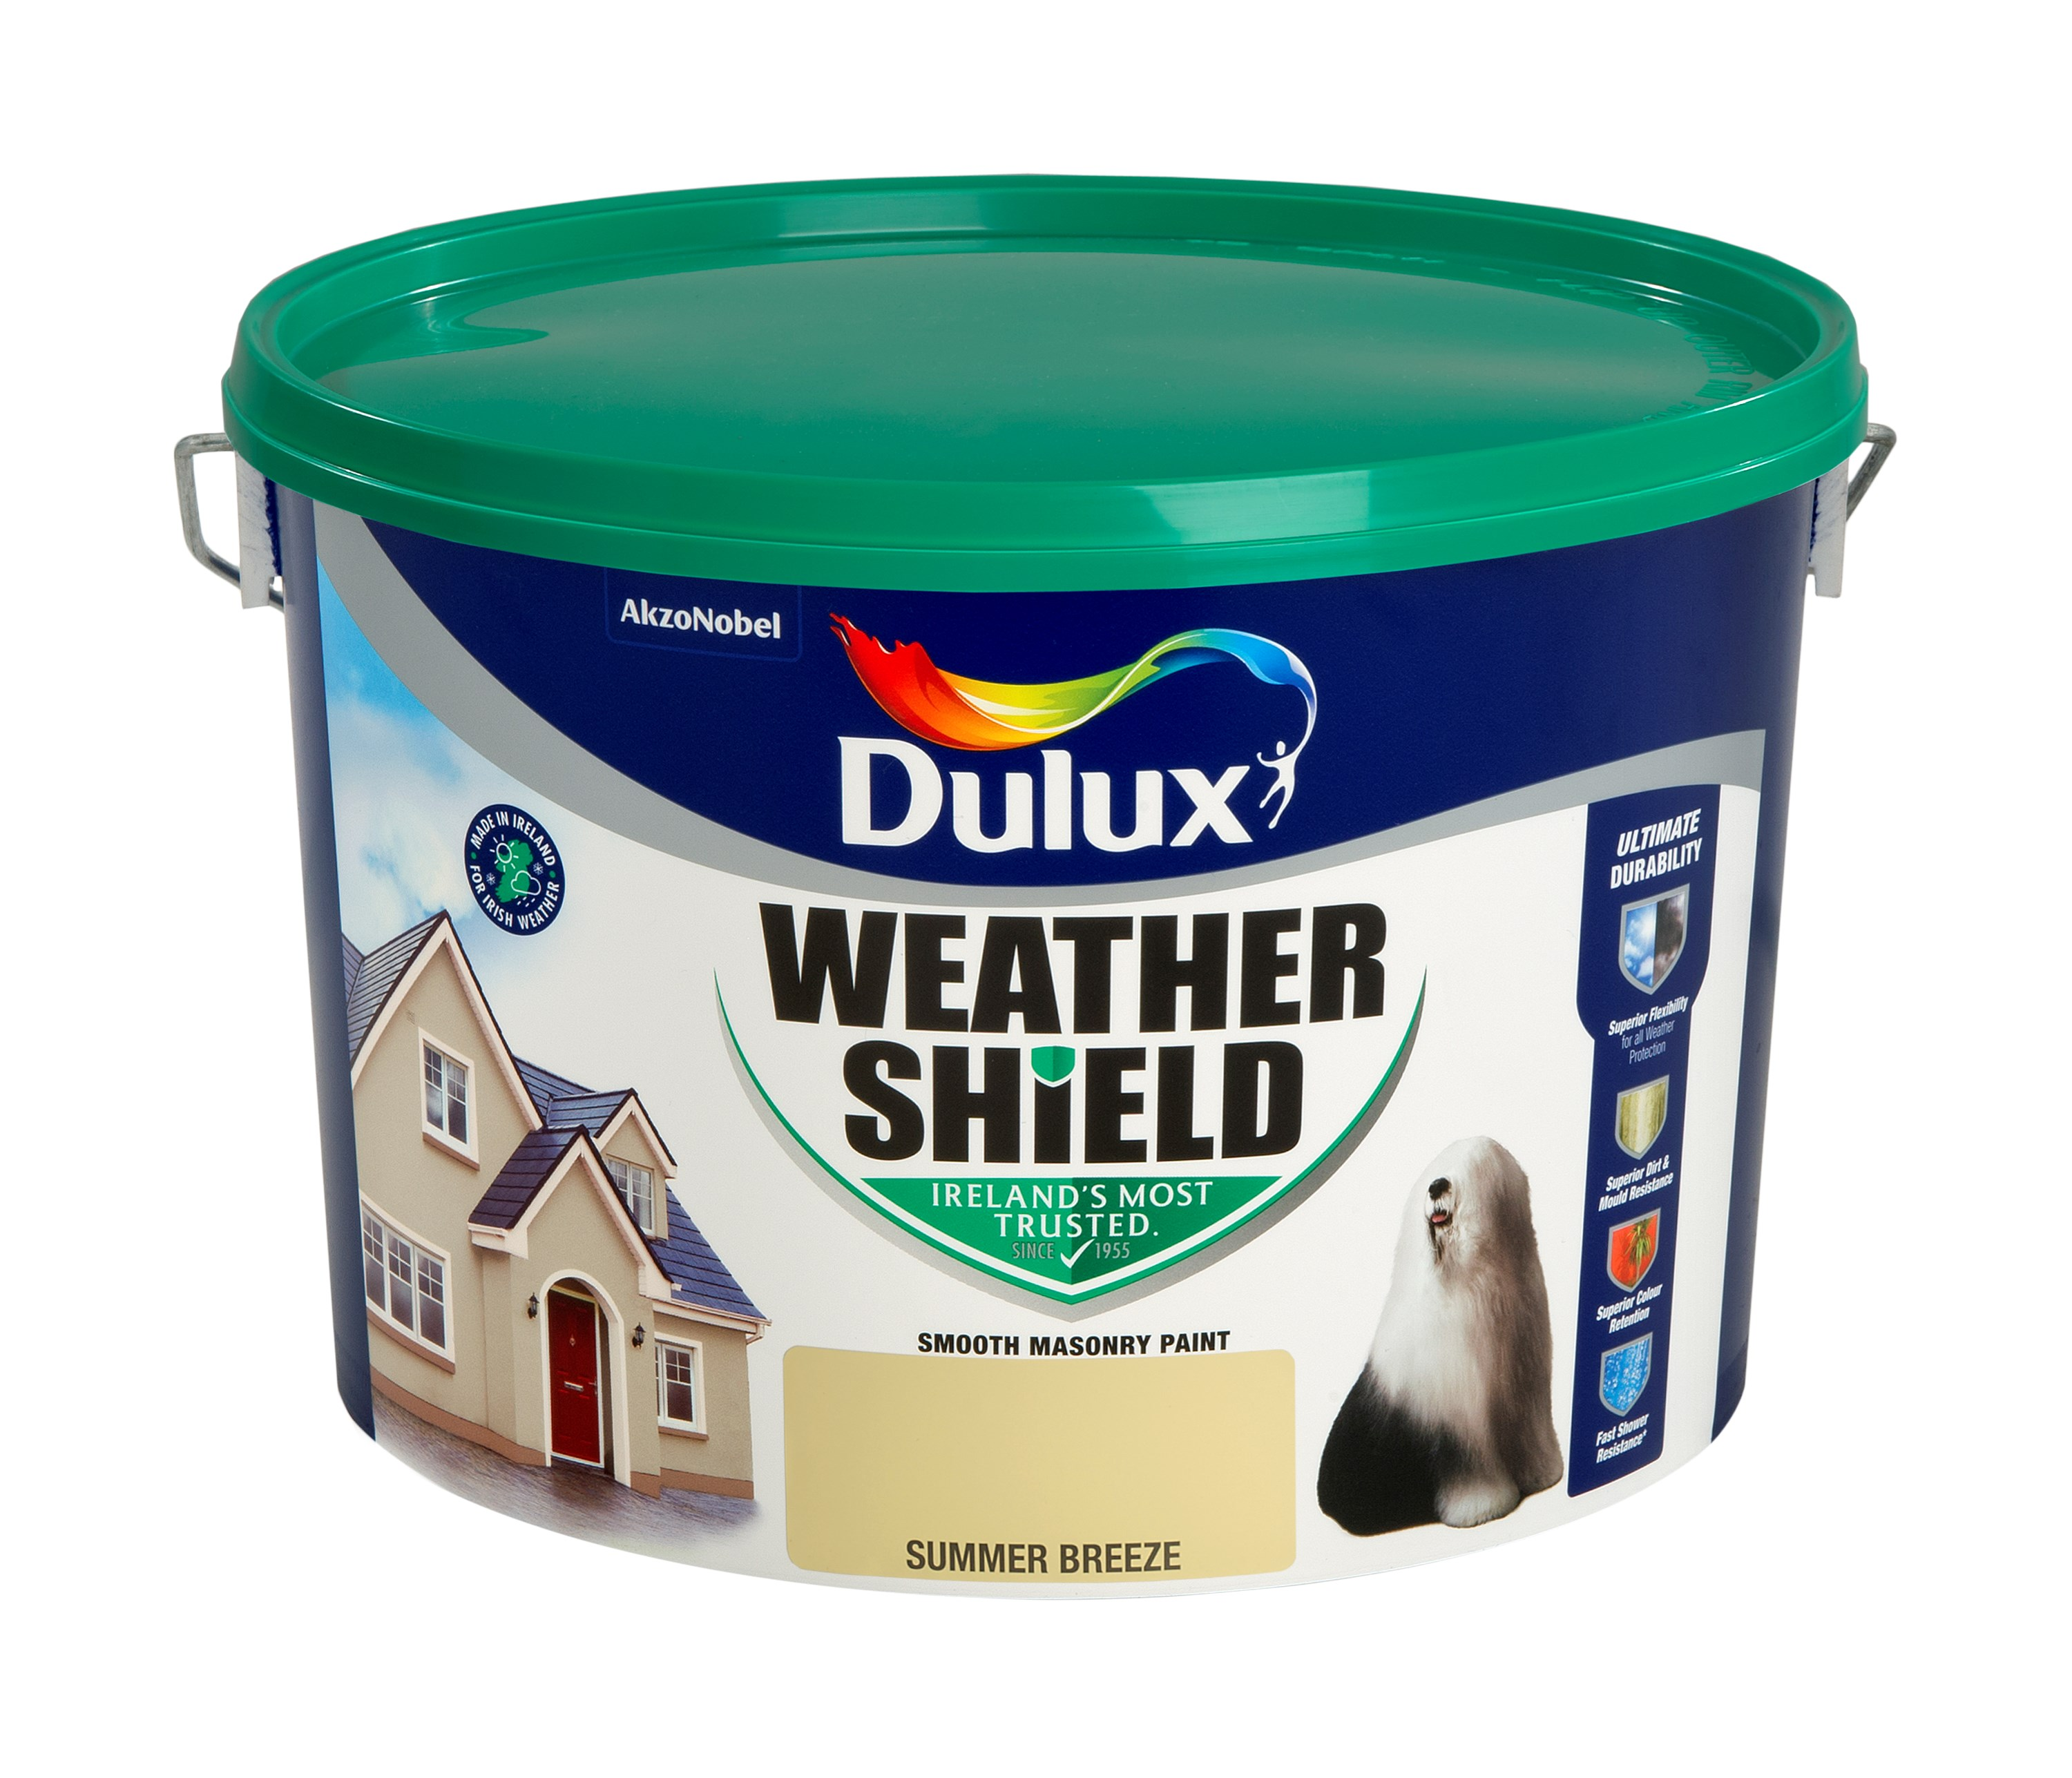 Dulux Masonry Paint Colours - 10 Litre